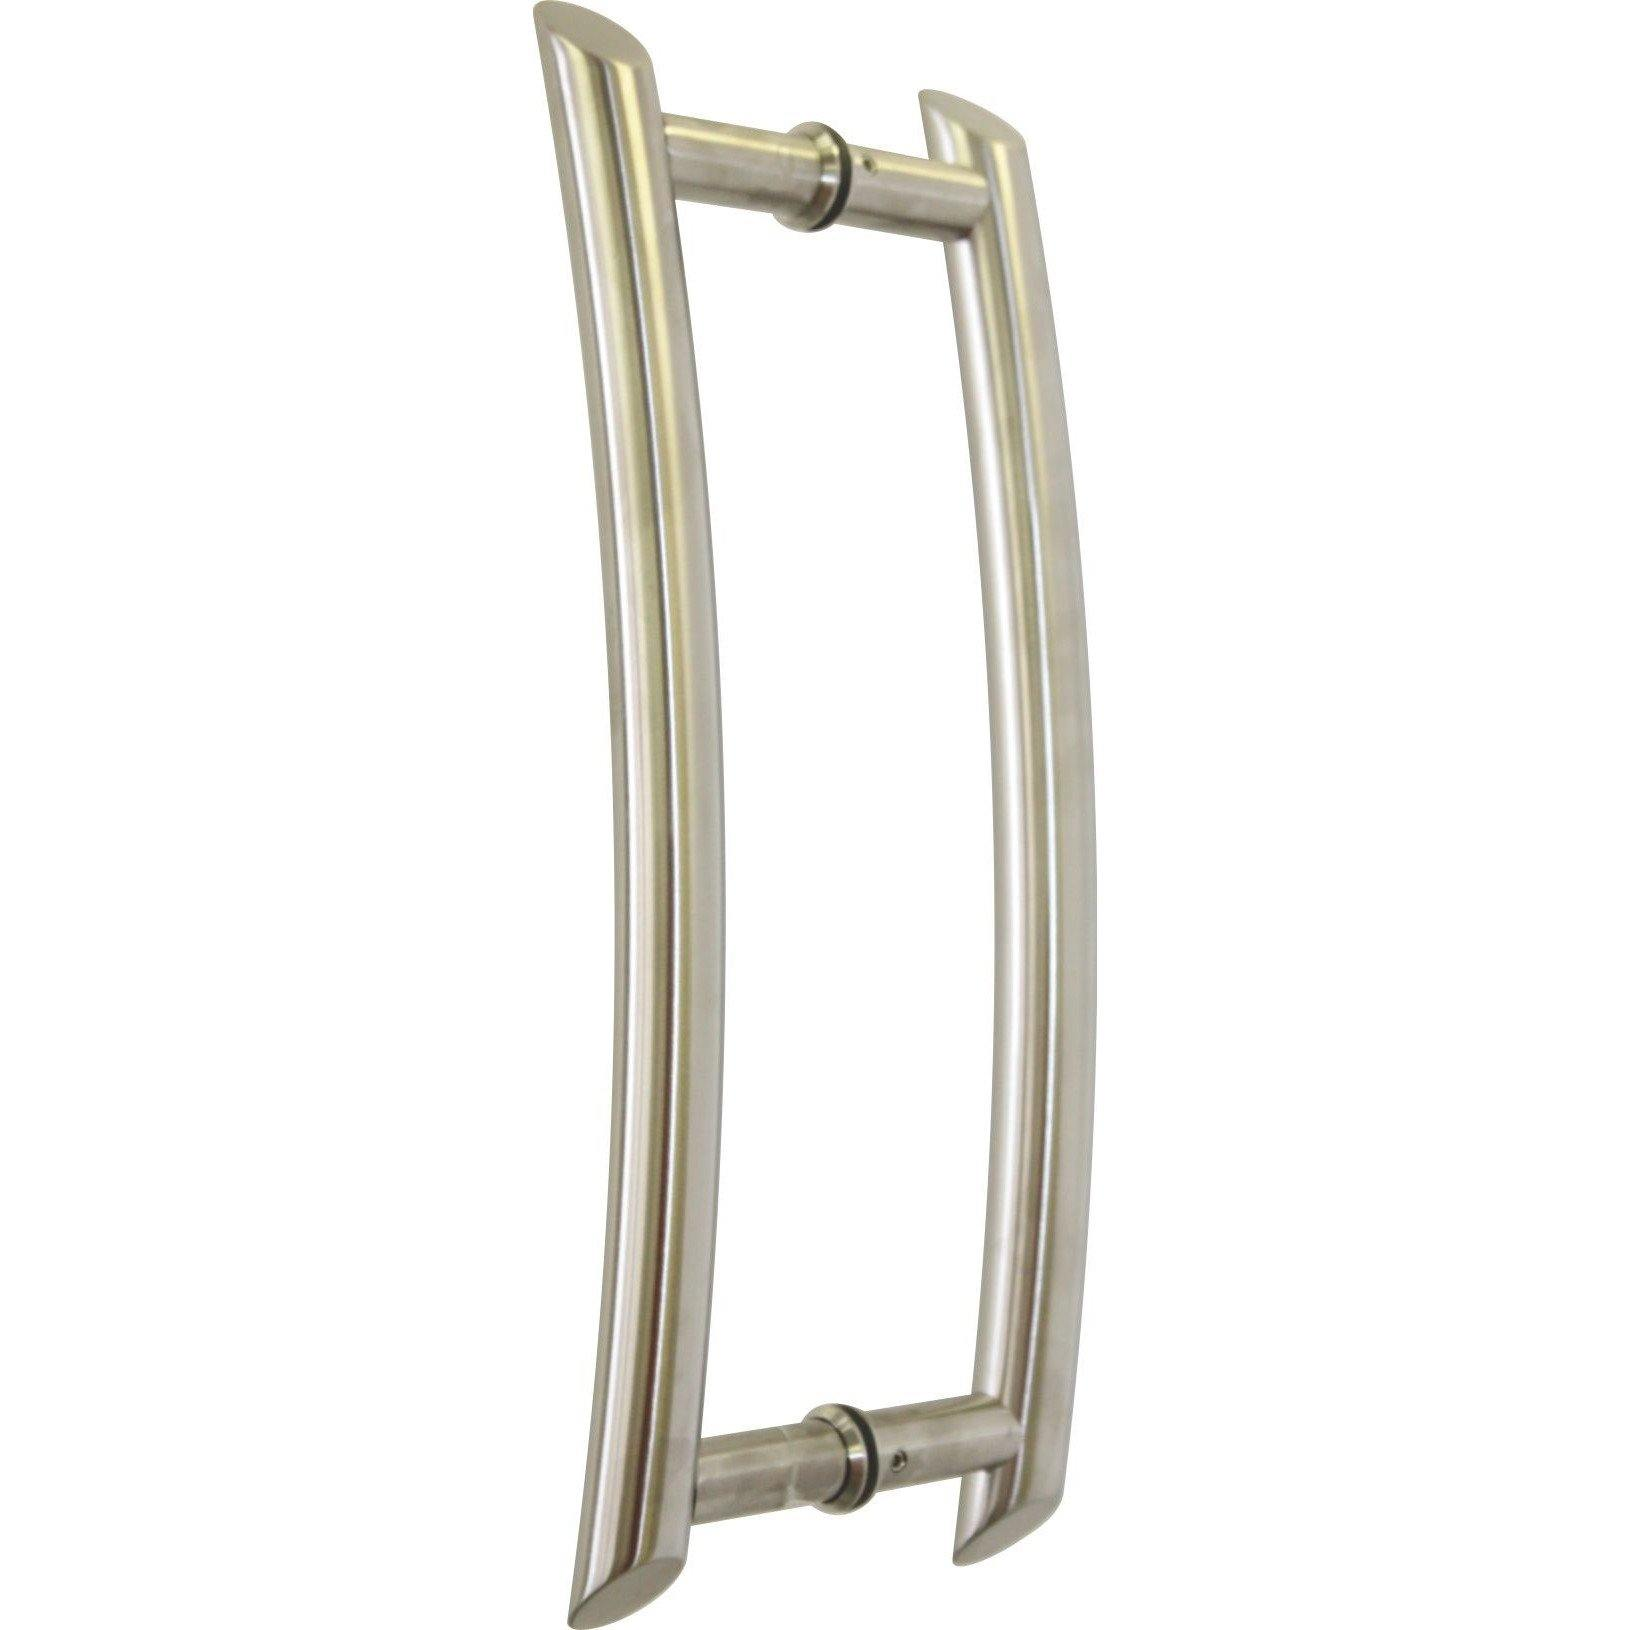 Brushed stainless steel pull handle